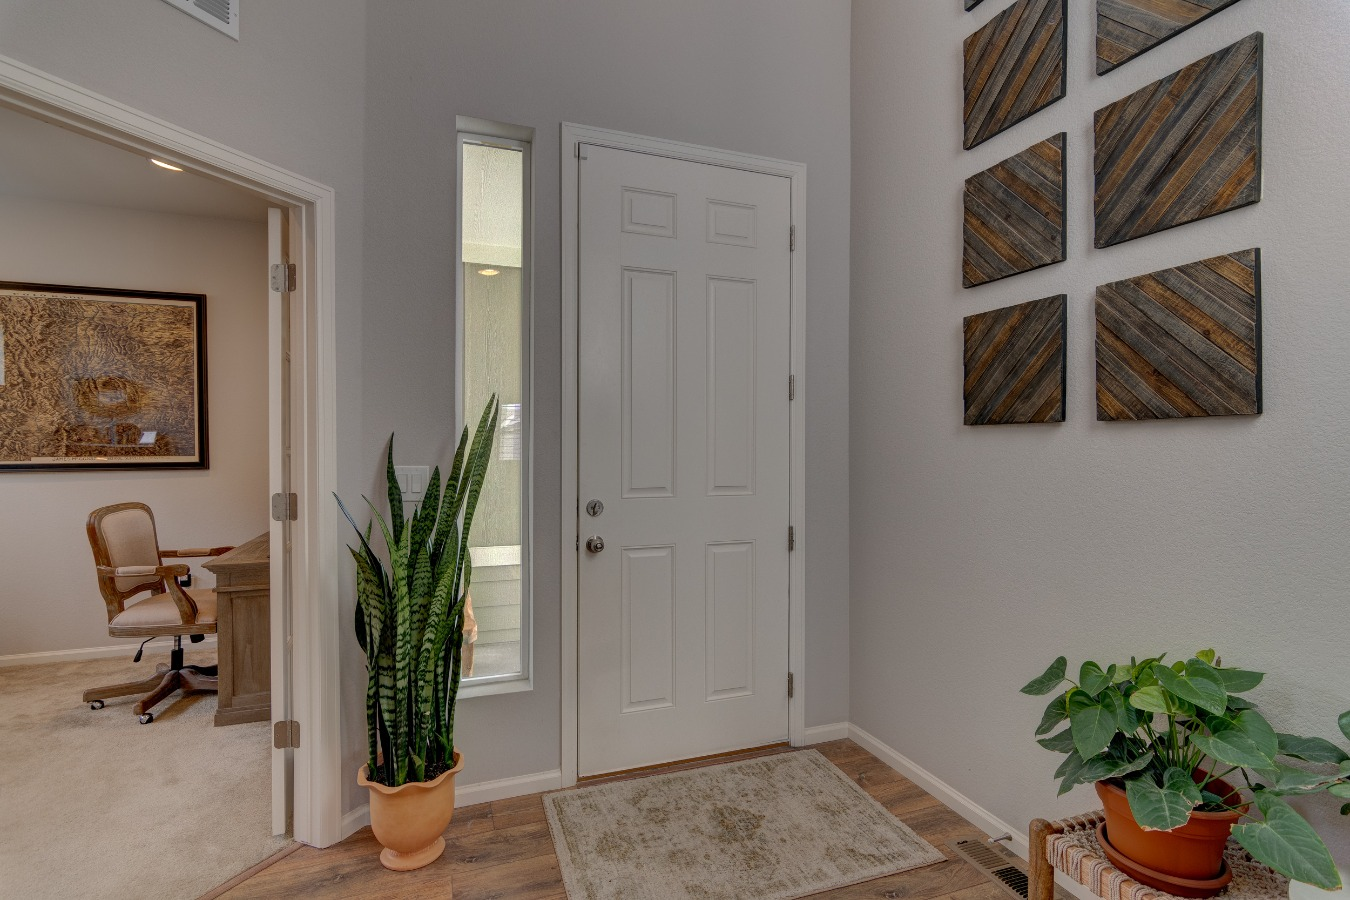 Front Door leads to a covered porch